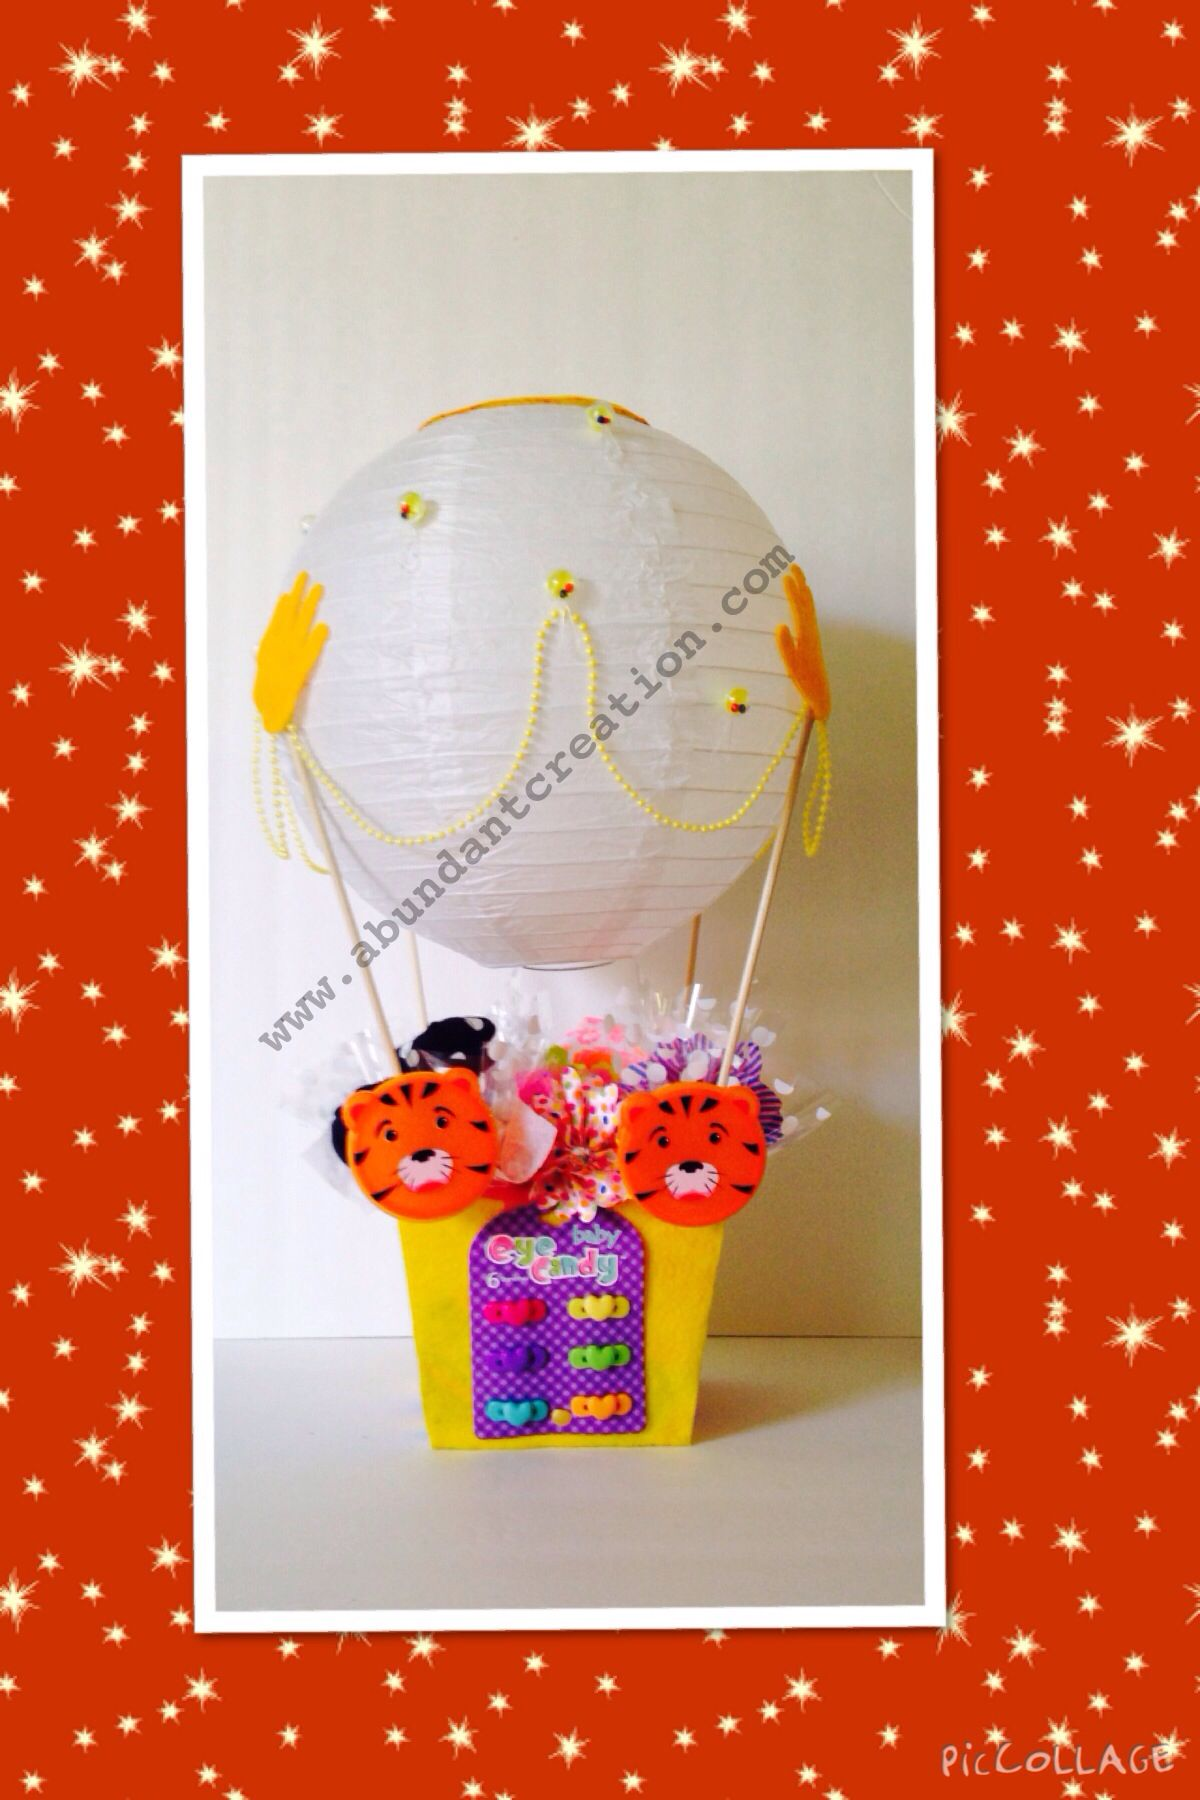 Hot Air Balloon Gift Basket. Up up and away with this